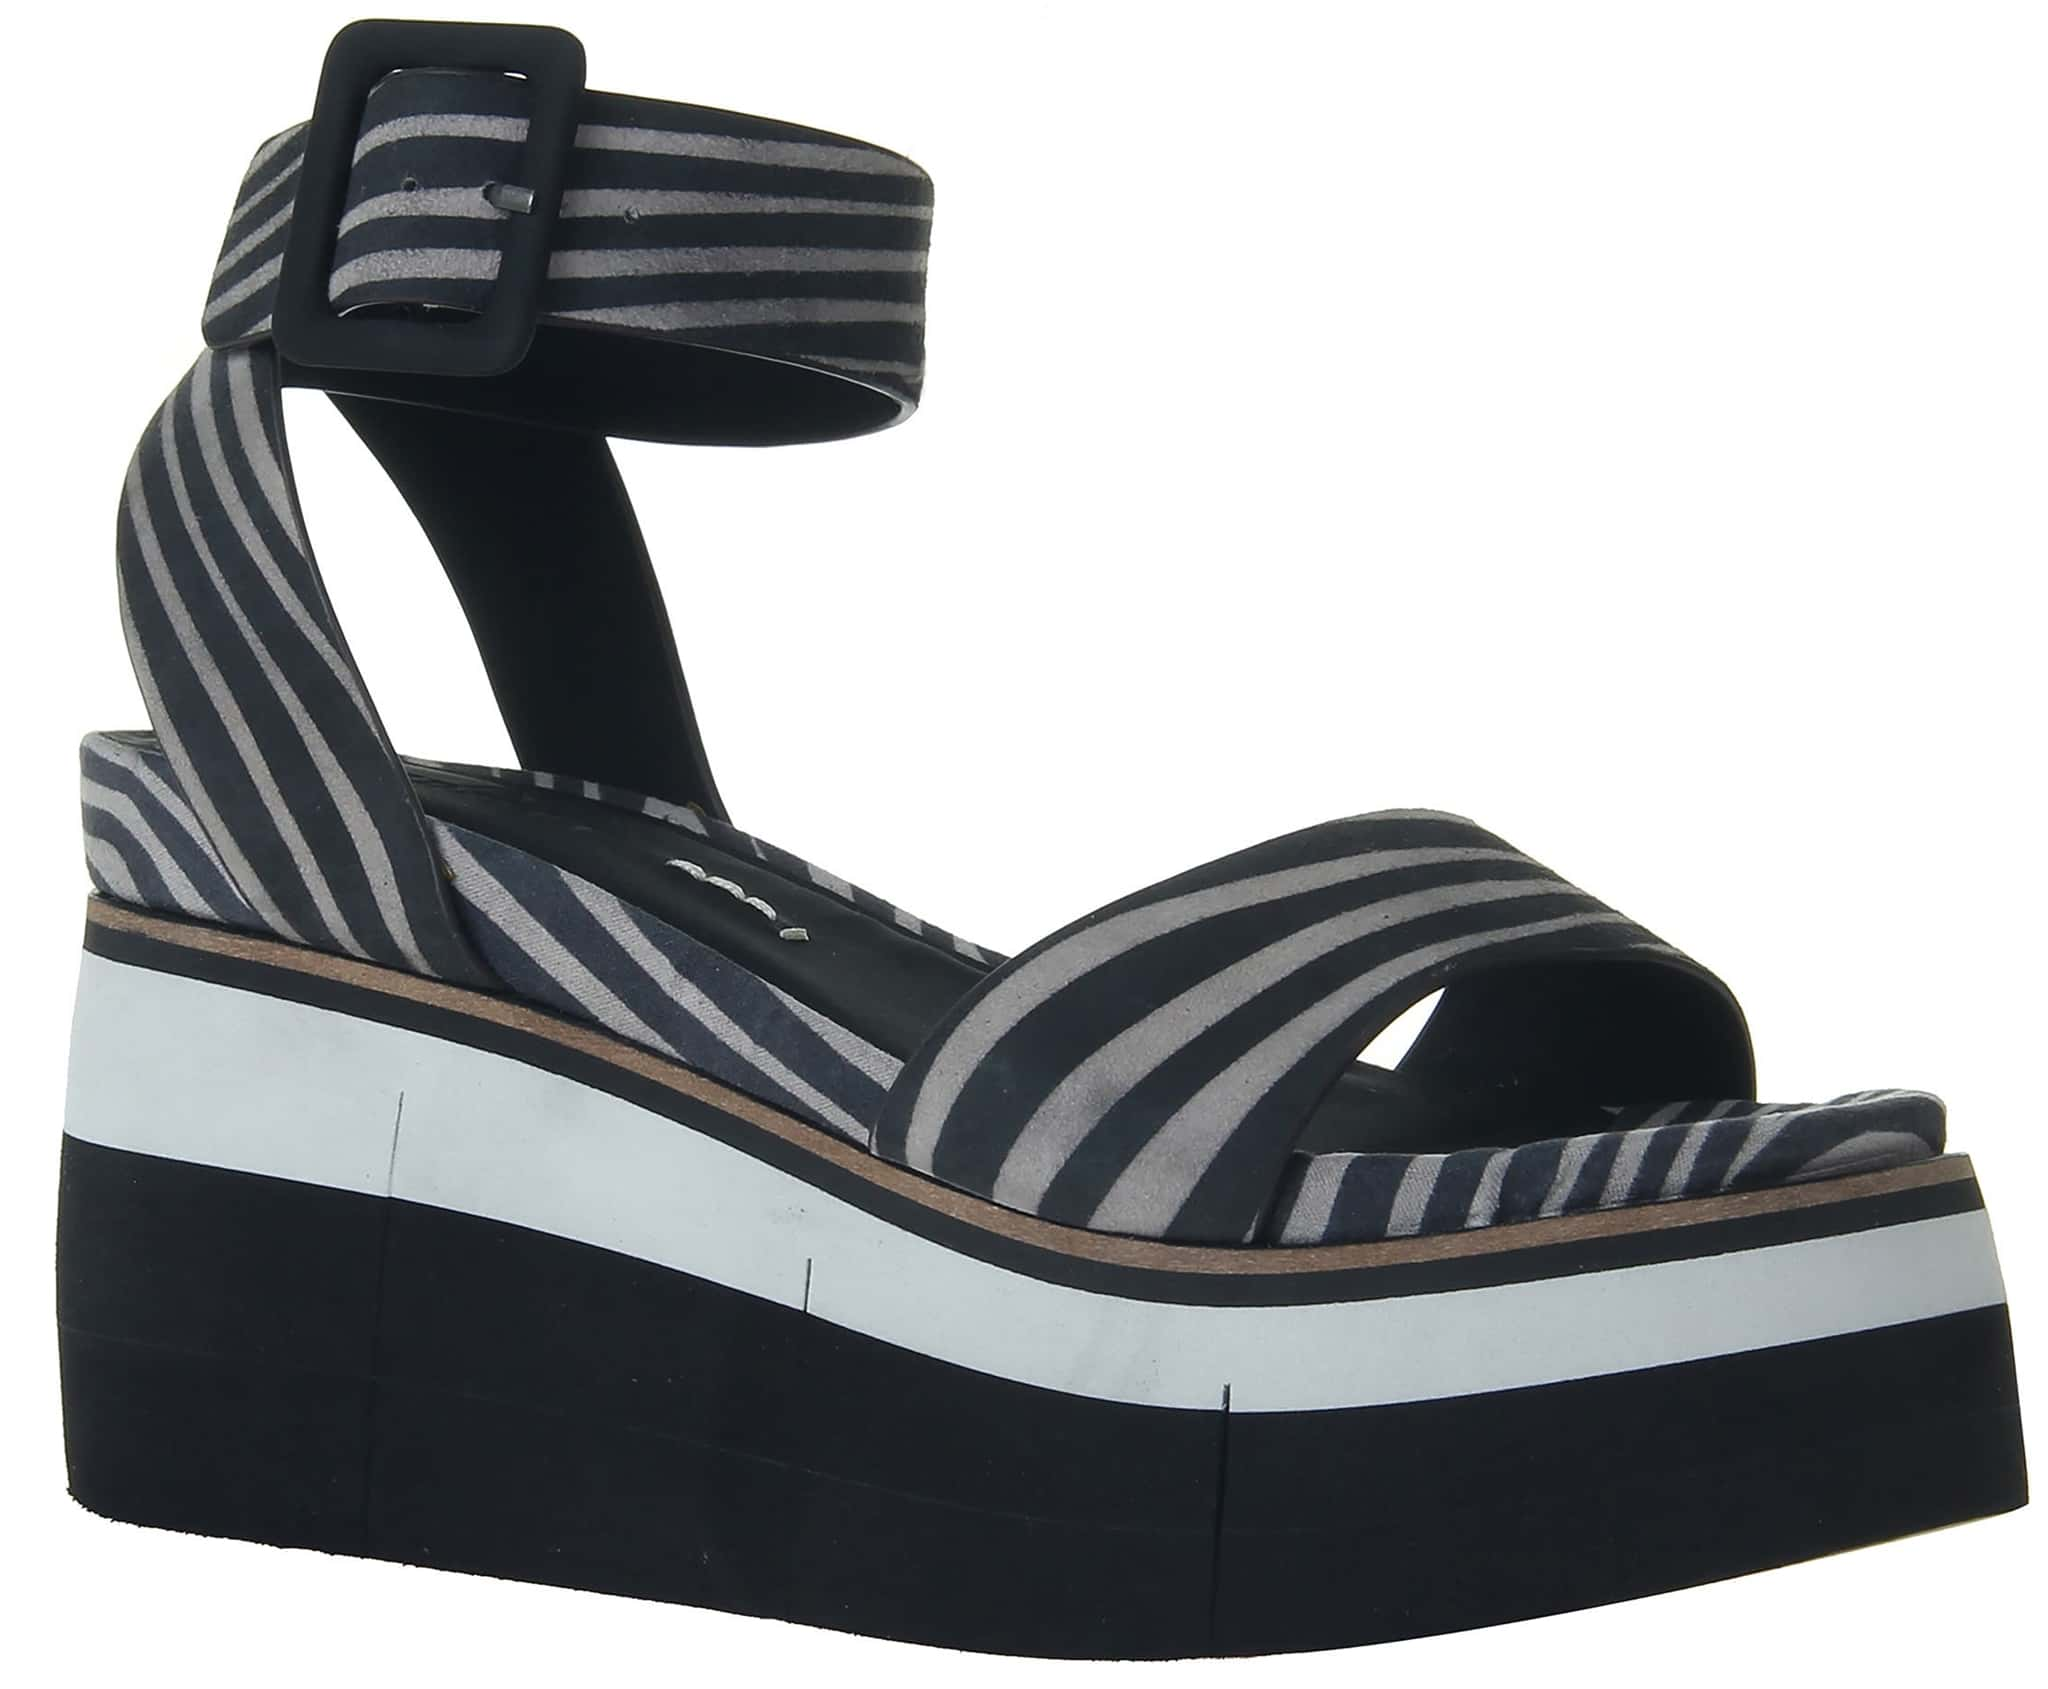 Altezza in zebra print is a wildly sophisticated, sporty platform wedge reaching entirely new heights